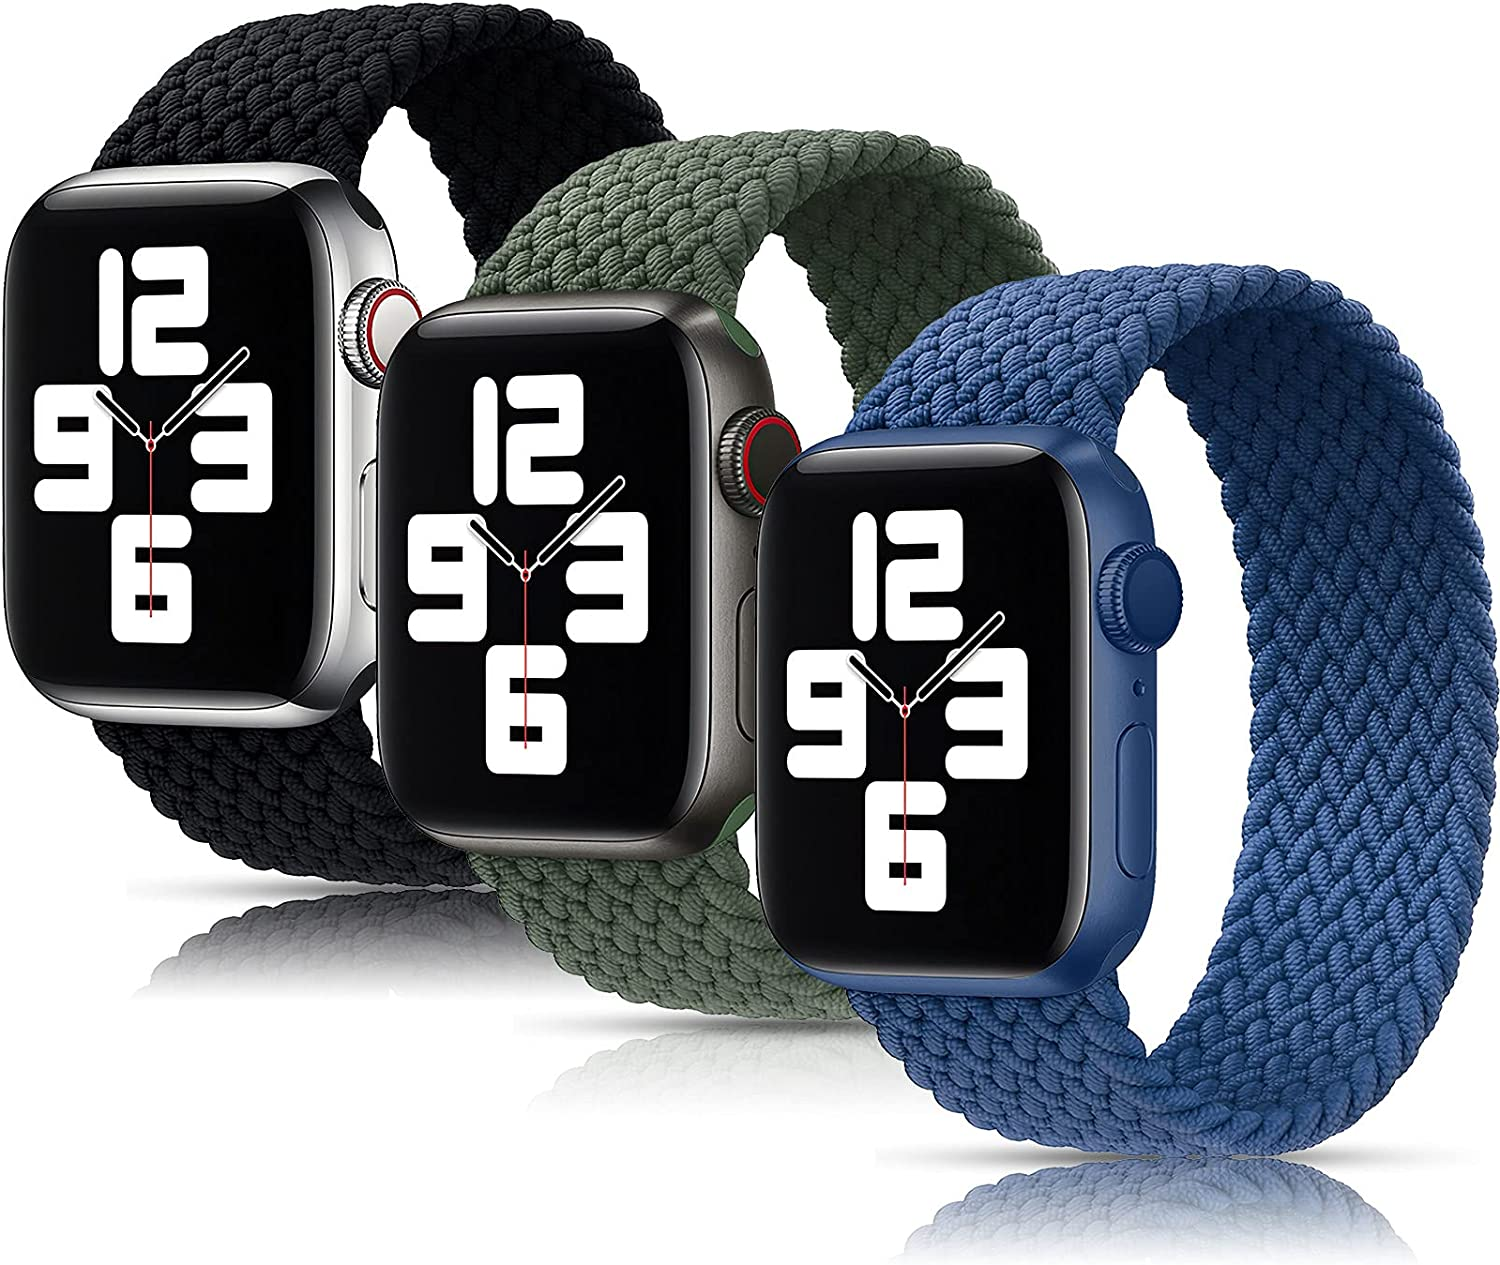 Girovo 3 Packs Solo Loop Strap Compatible with Braided Sport Apple Watch Band 42mm 44mm, Soft Stretchy Braided Wristband for iWatch Series 1/2/3/4/5/6/SE, Charcoal/Green/Blue, XL